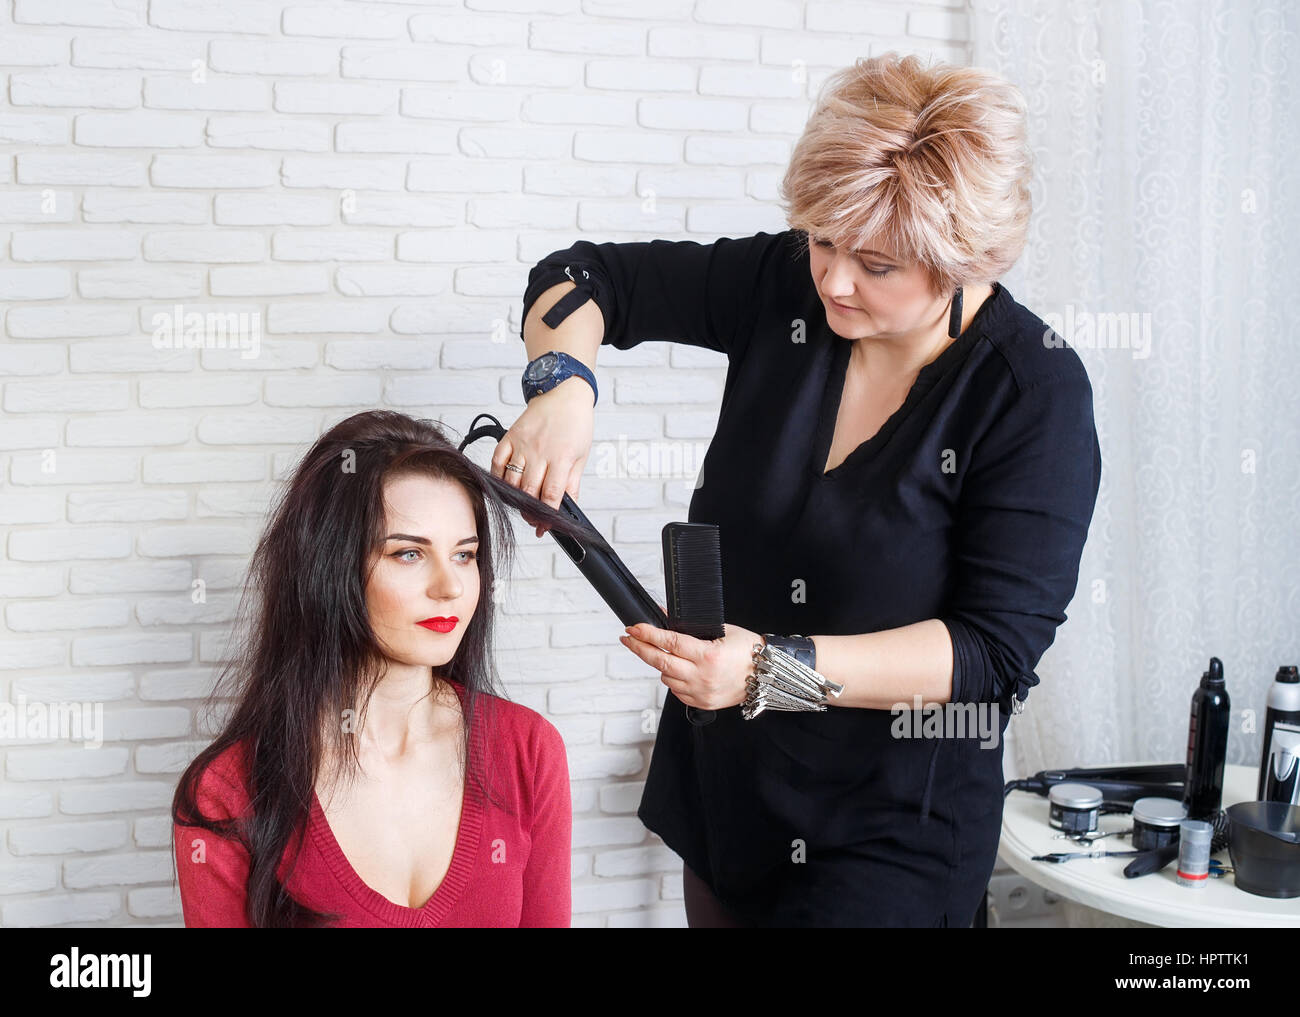 Professional Hairdresser Middle Aged Woman Straightening Long Hair